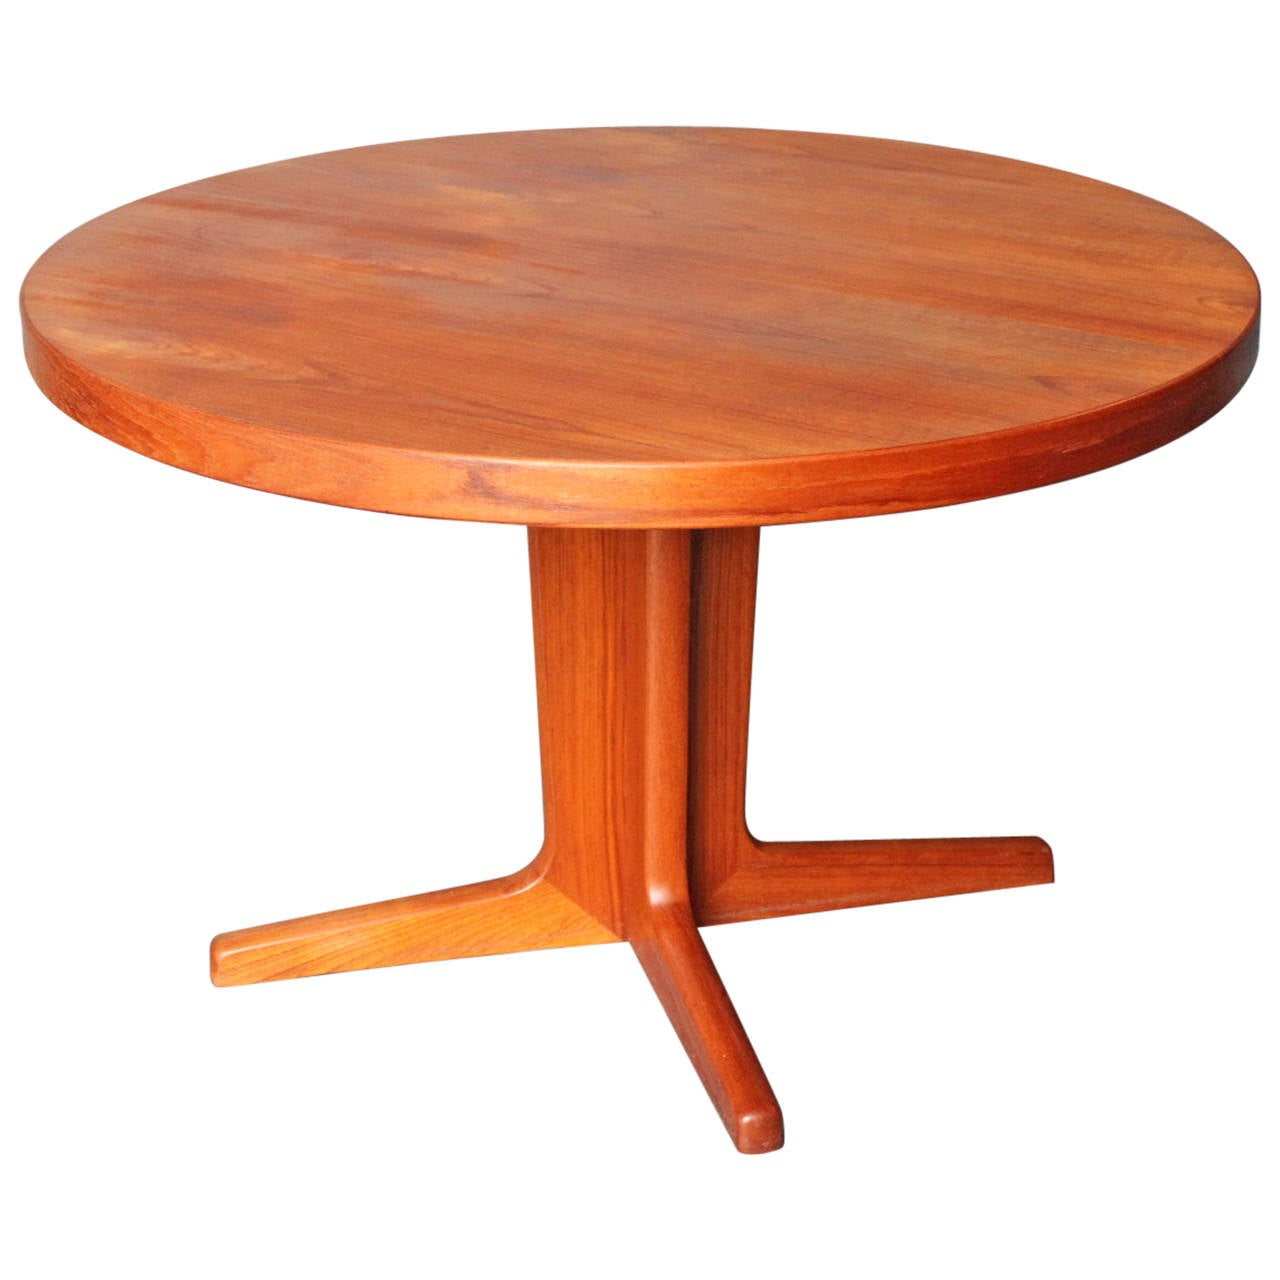 Dining table by skovby in teak c 1960 for sale at 1stdibs for Table furniture